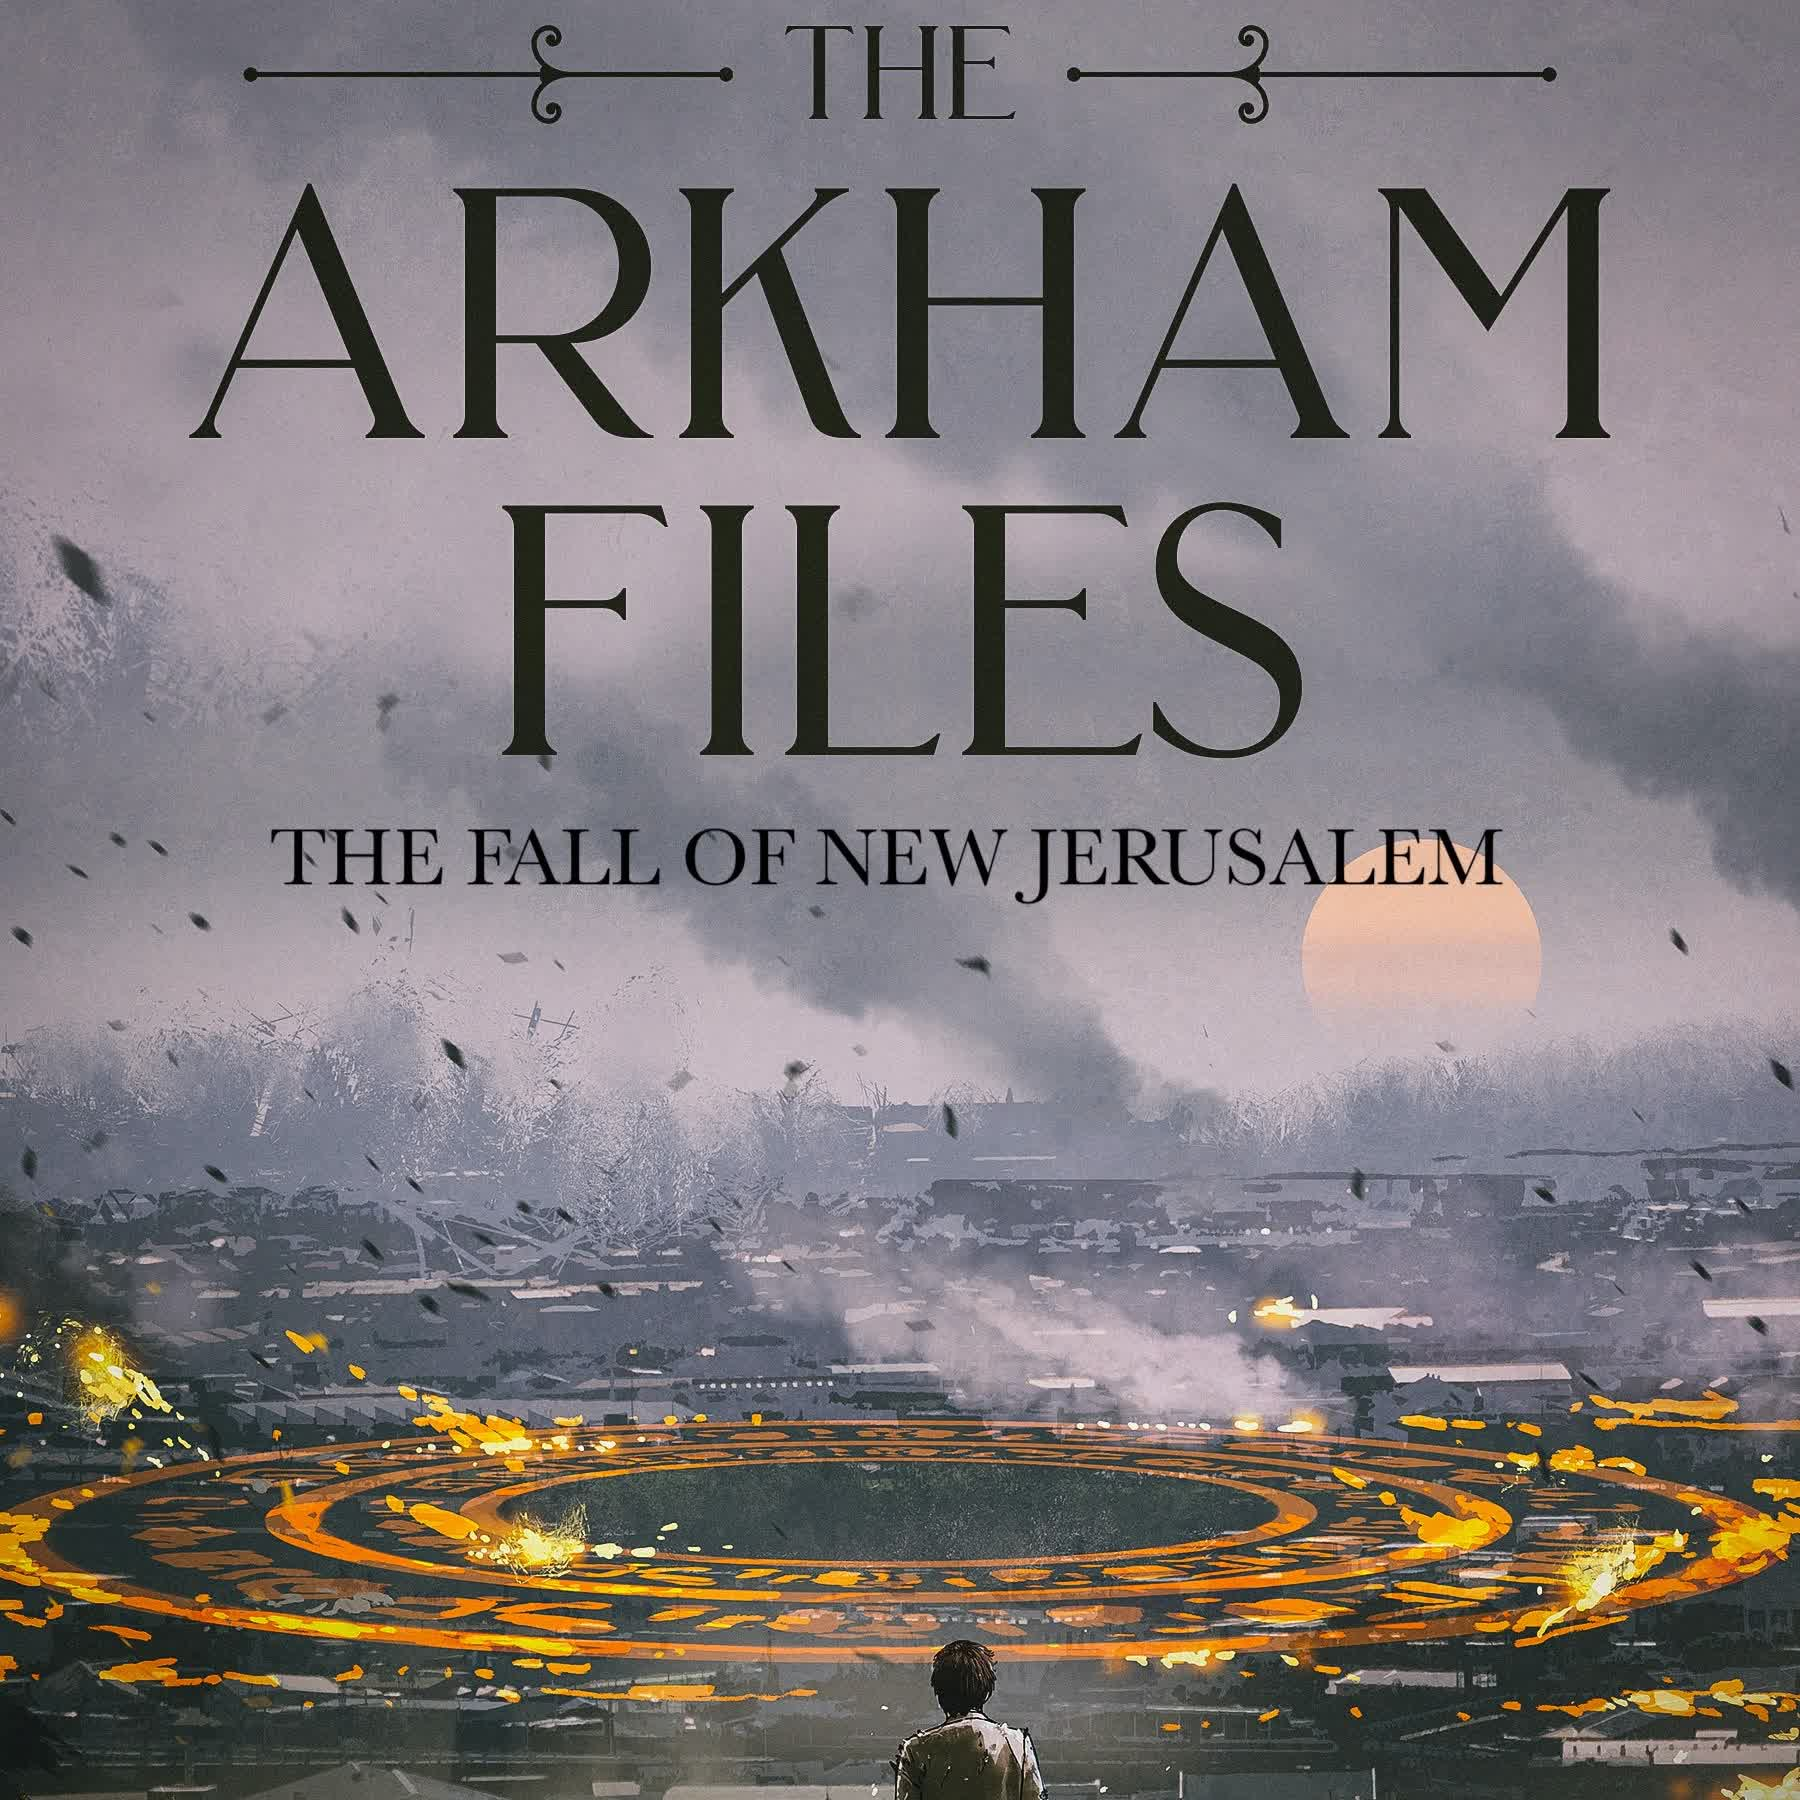 The Fall of New Jerusalem 301: No Rest for the Wicked